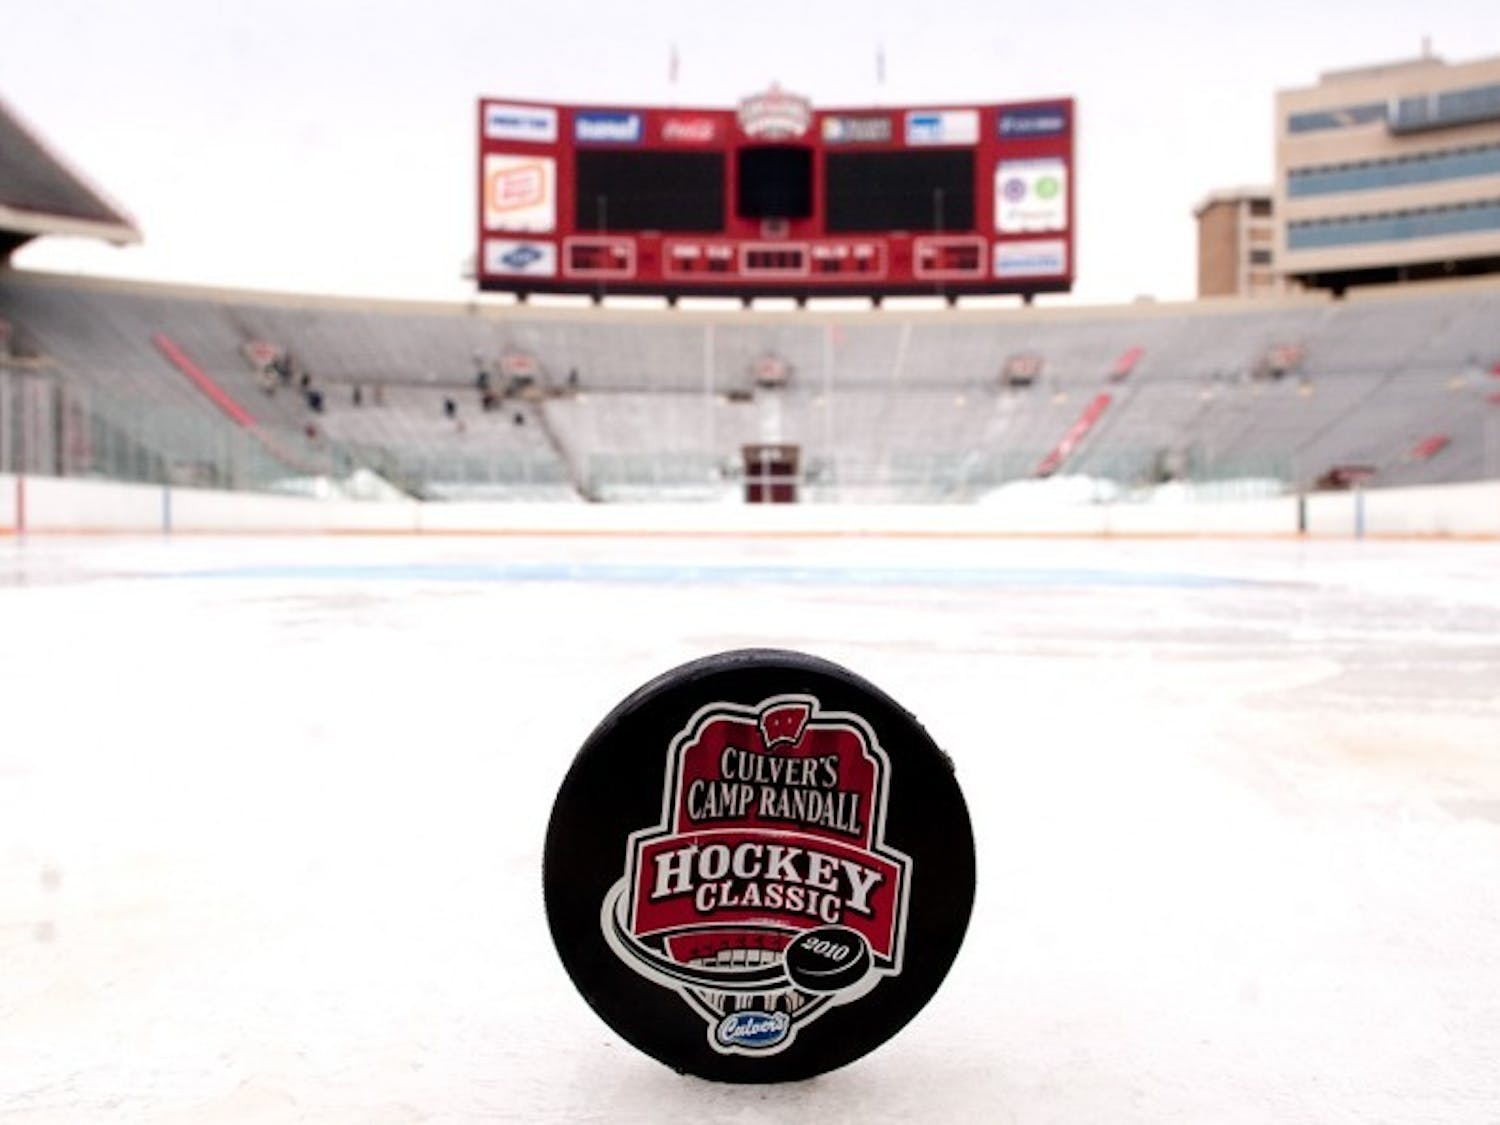 Out in the cold: Classic trades stadium turf for temporary ice